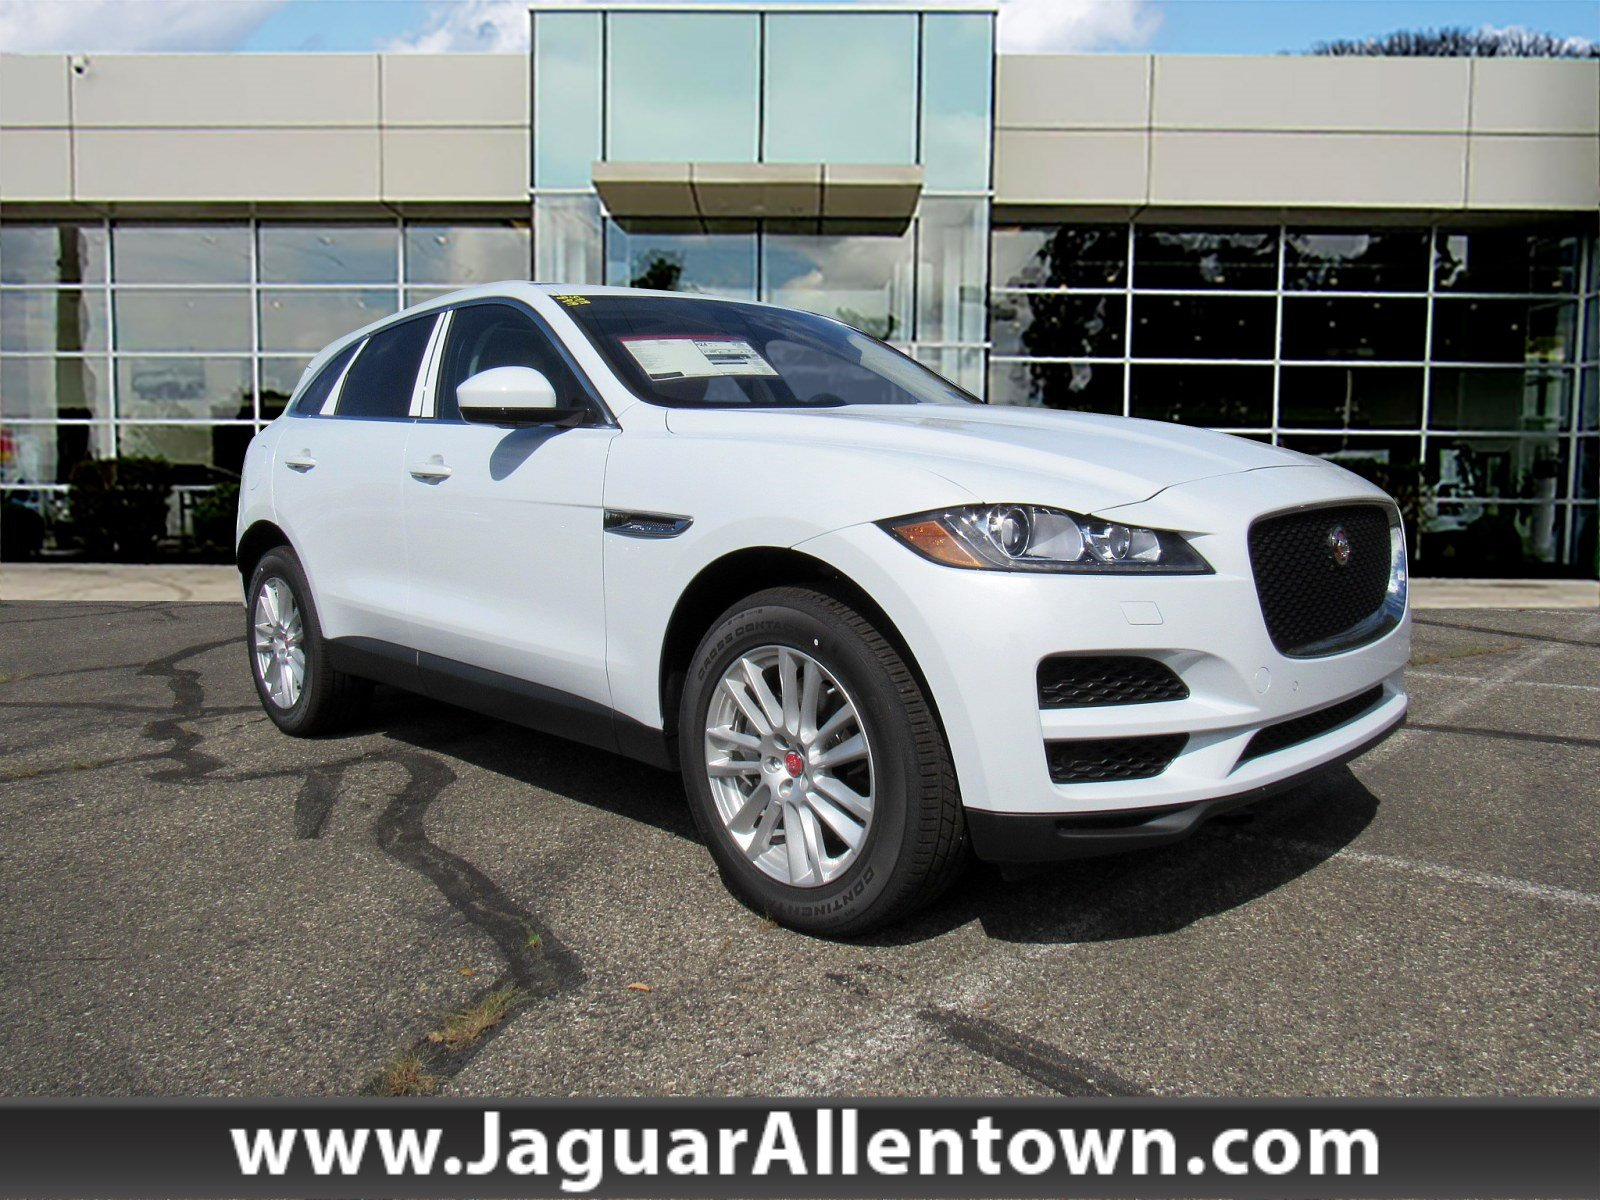 New 2019 Jaguar F Pace Suv In Allentown 10104 Jaguar Allentown